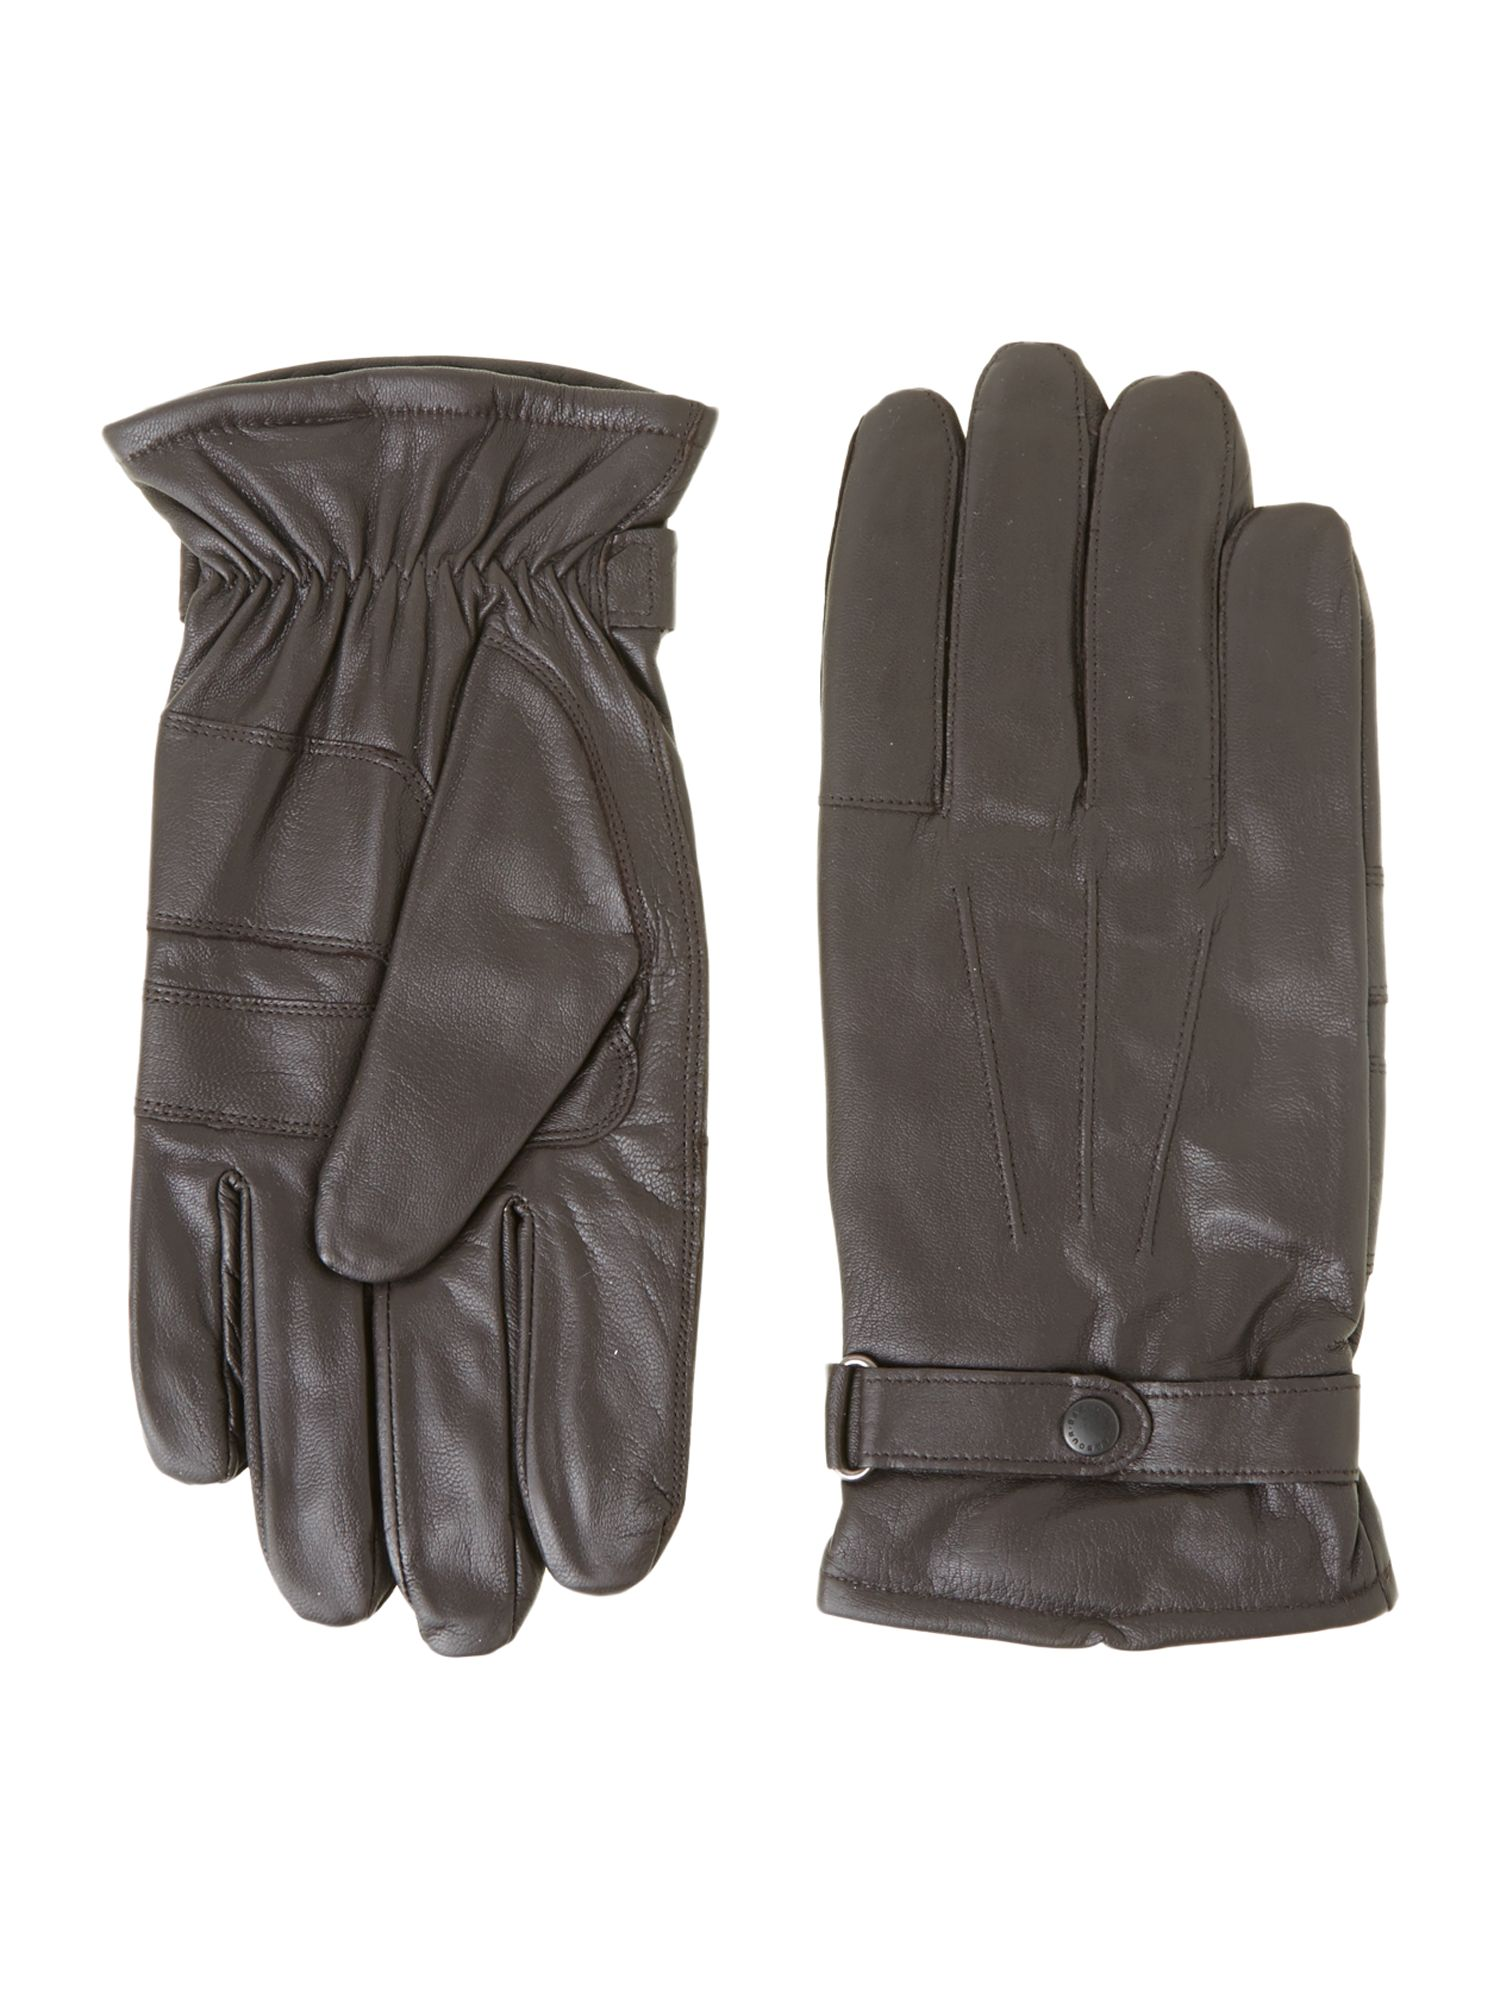 Burnished leather thinsulate gloves